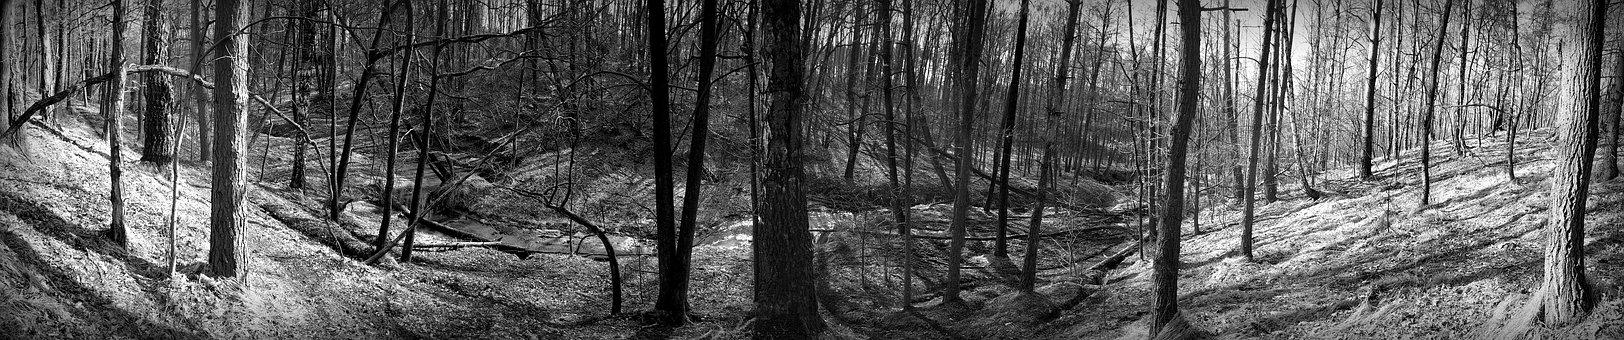 Nature, Panoramic, Tree, Old, No One, Forest, Spring